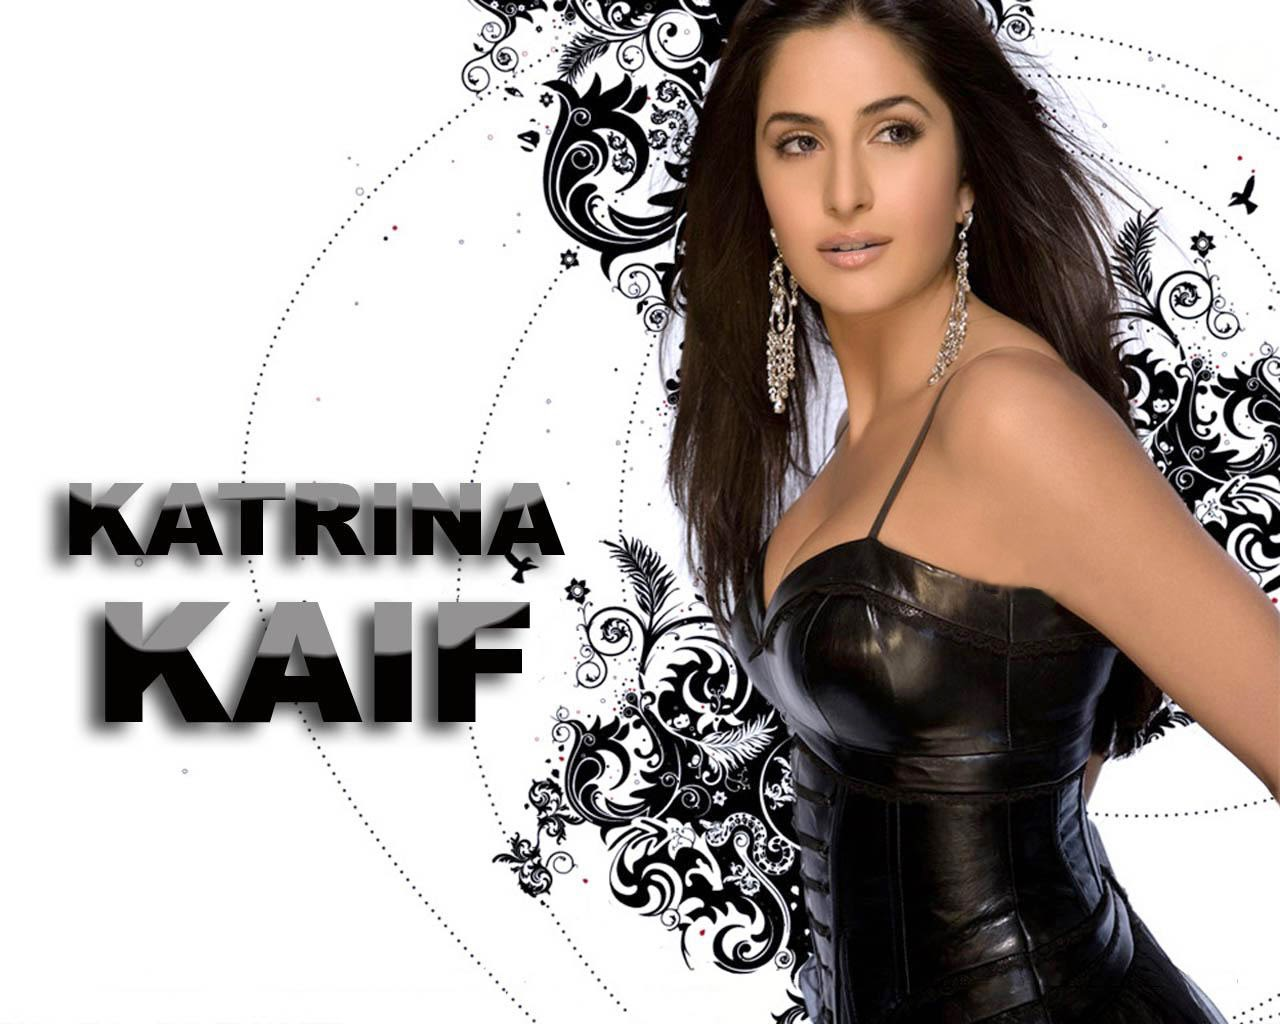 Katrina Kaif Sex Video Katrina Kaif Sex